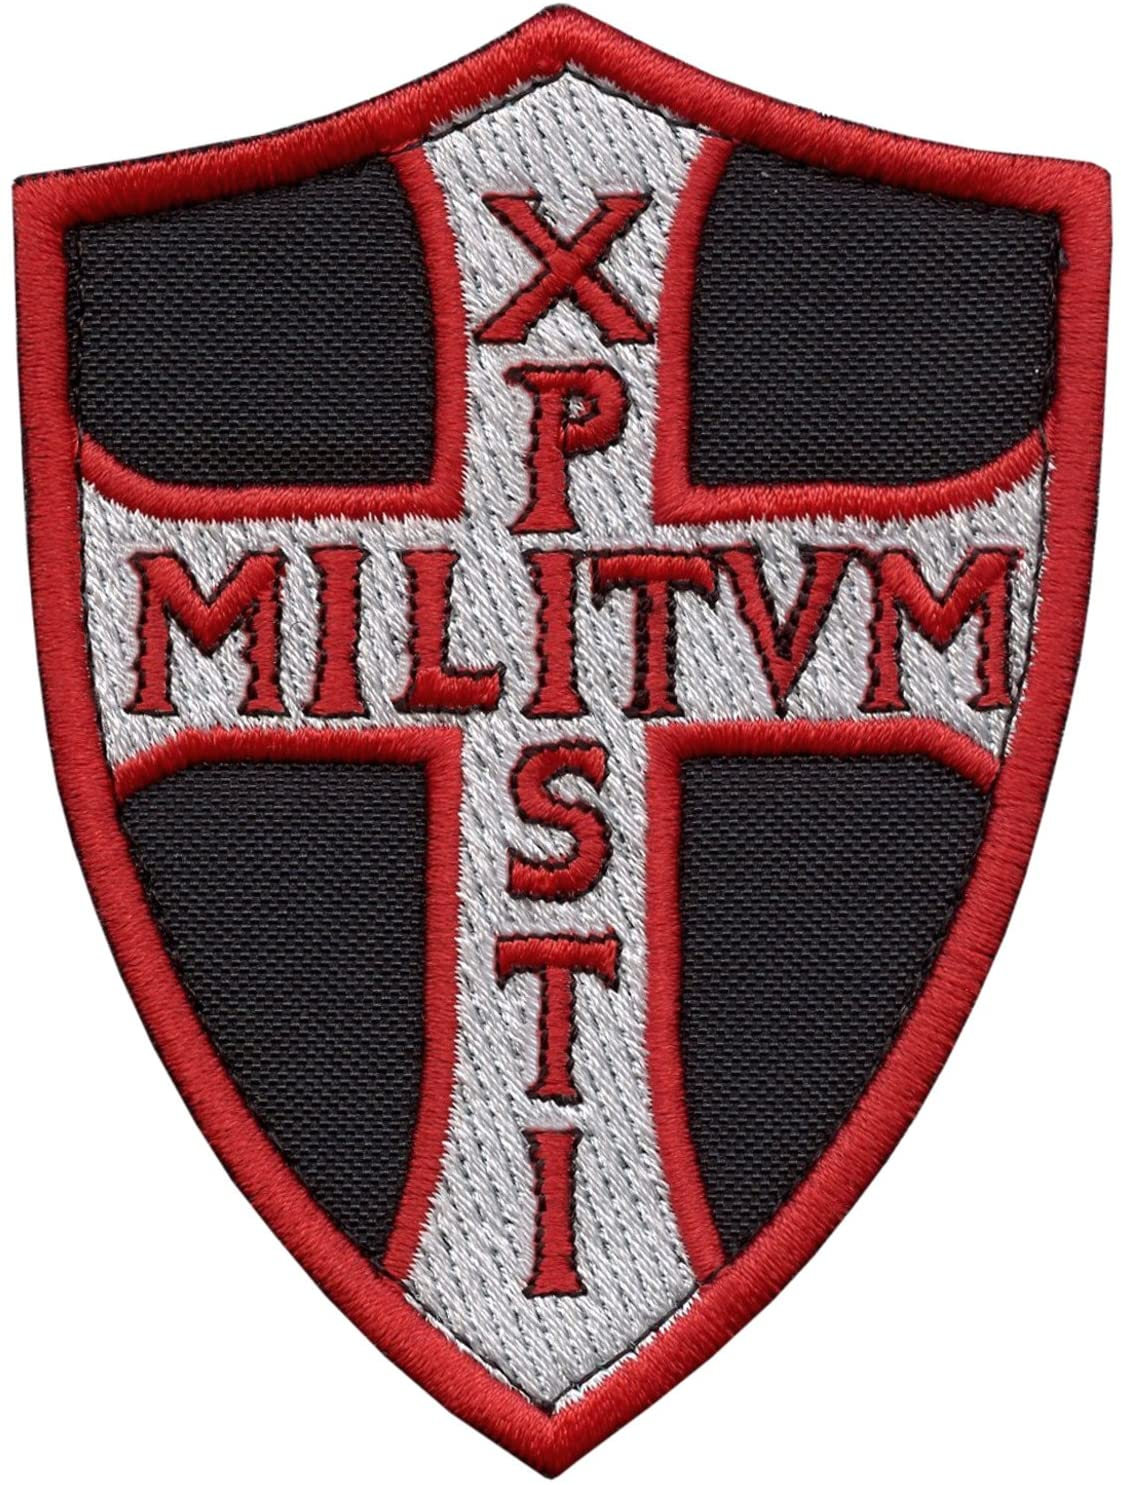 LEGEEON Knights Templar Chi Rho Xpisti Militvm Soldiers of Christ Crusader Cross Tactical Morale Sew Iron on Patch